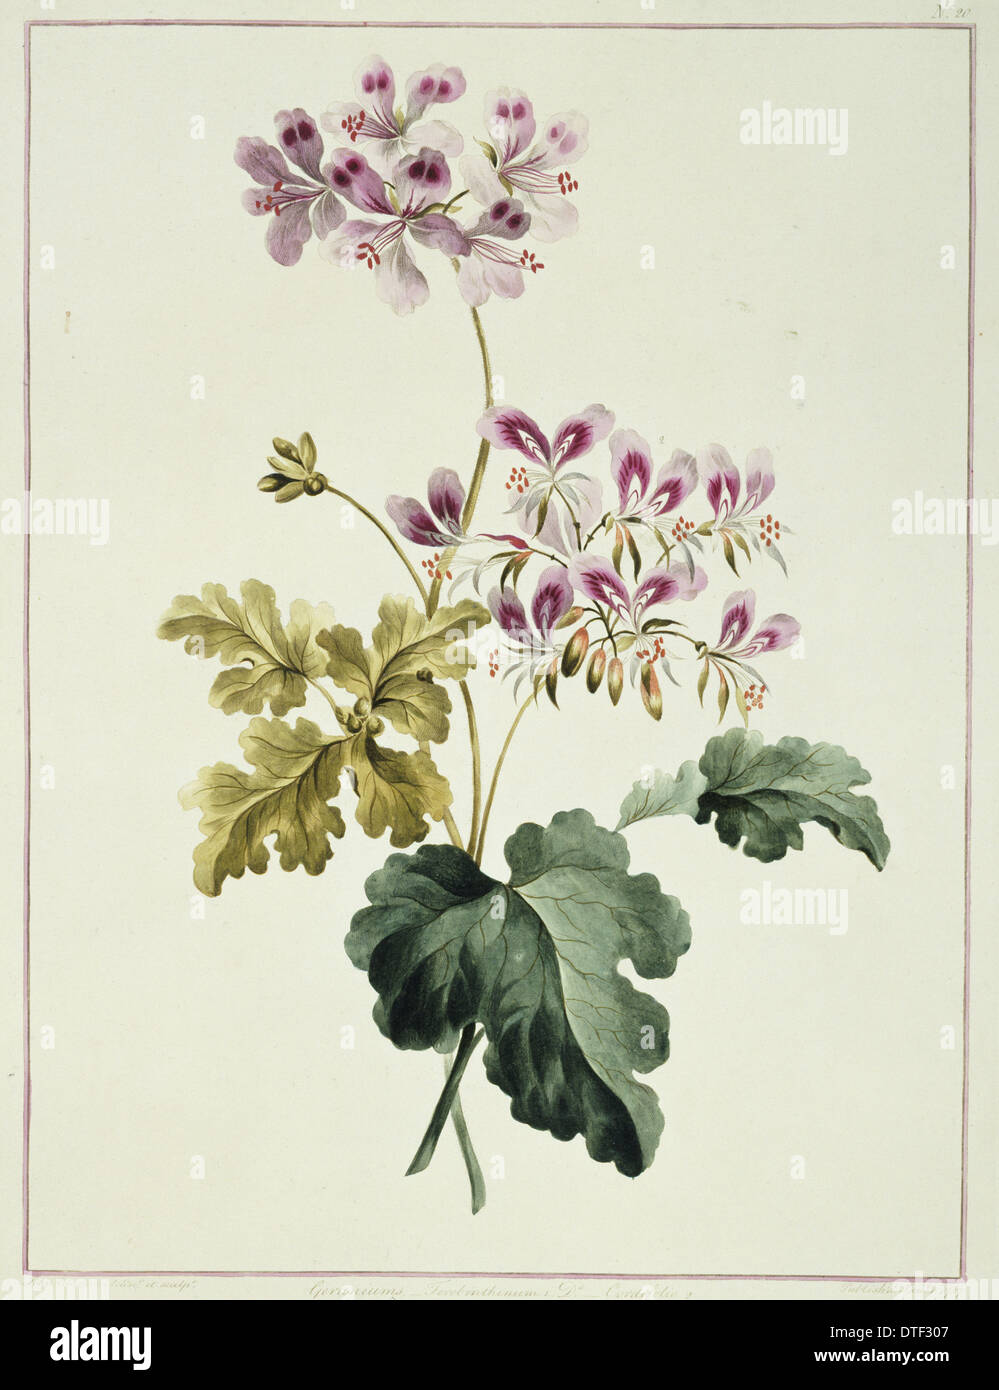 Folio 19 from A Collection of Flowers by John Edwards - Stock Image